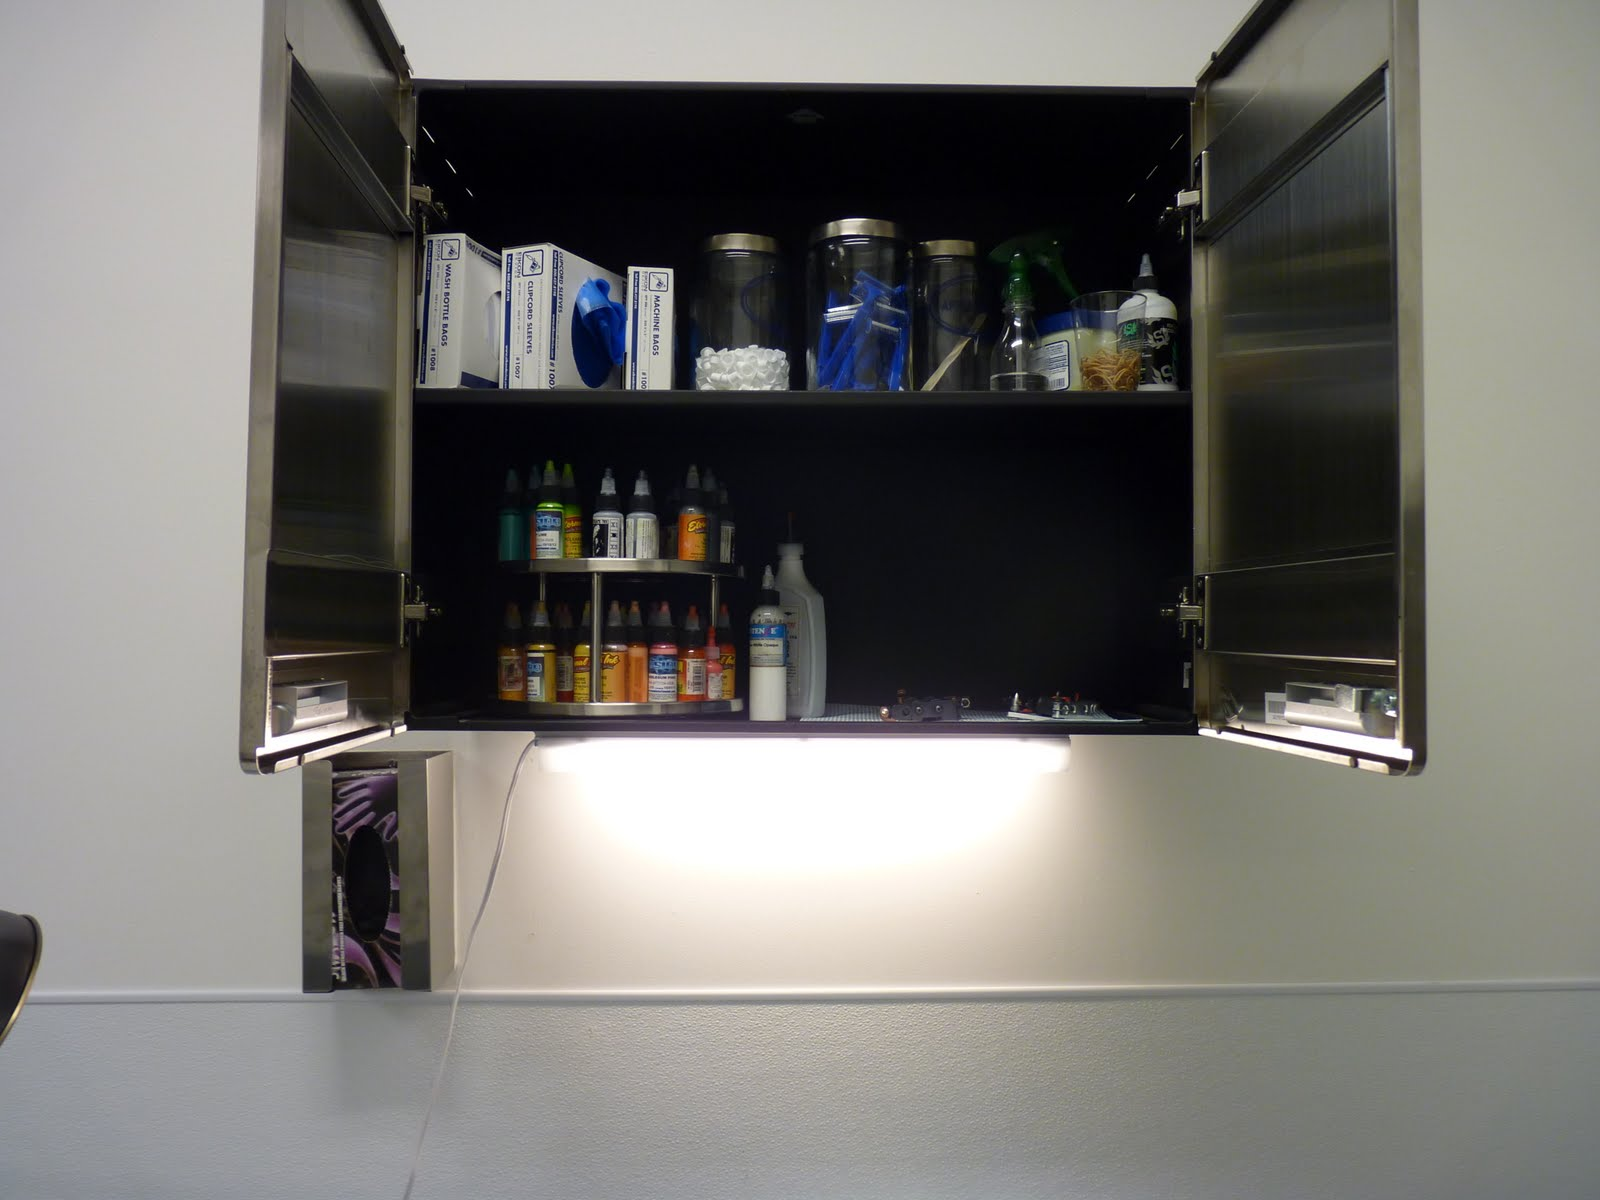 This Is A Shot Of My Sweet Stainless Steel Cabinet, Made My Hercke. Up Top  Are Barrier Bags For Machines And Rinse Bottles, And Some More Disposable  ...